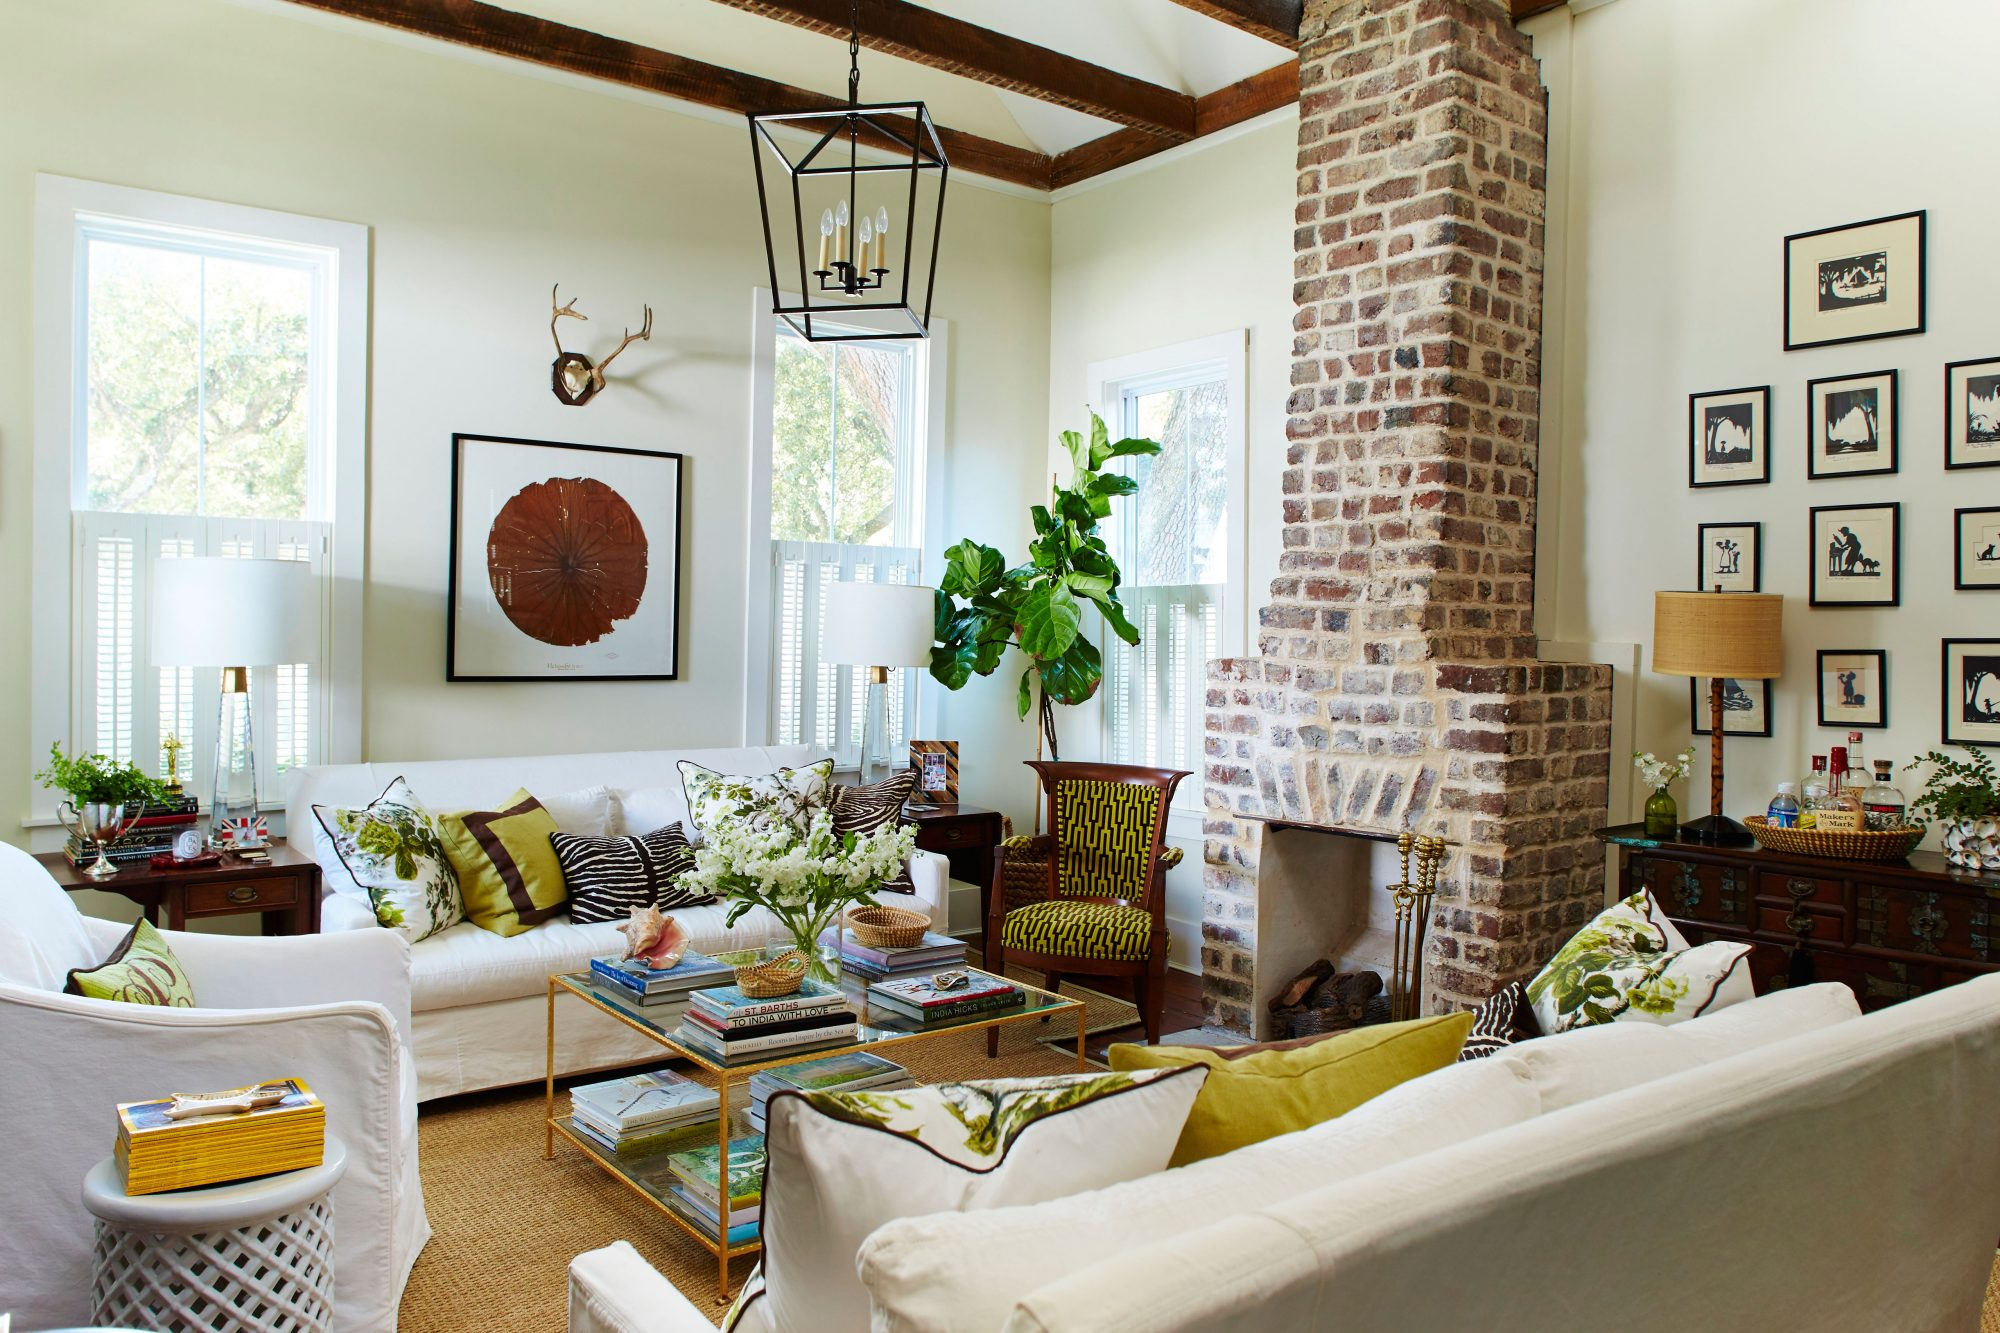 Decorating Tips From Mama That Deserve A Comeback